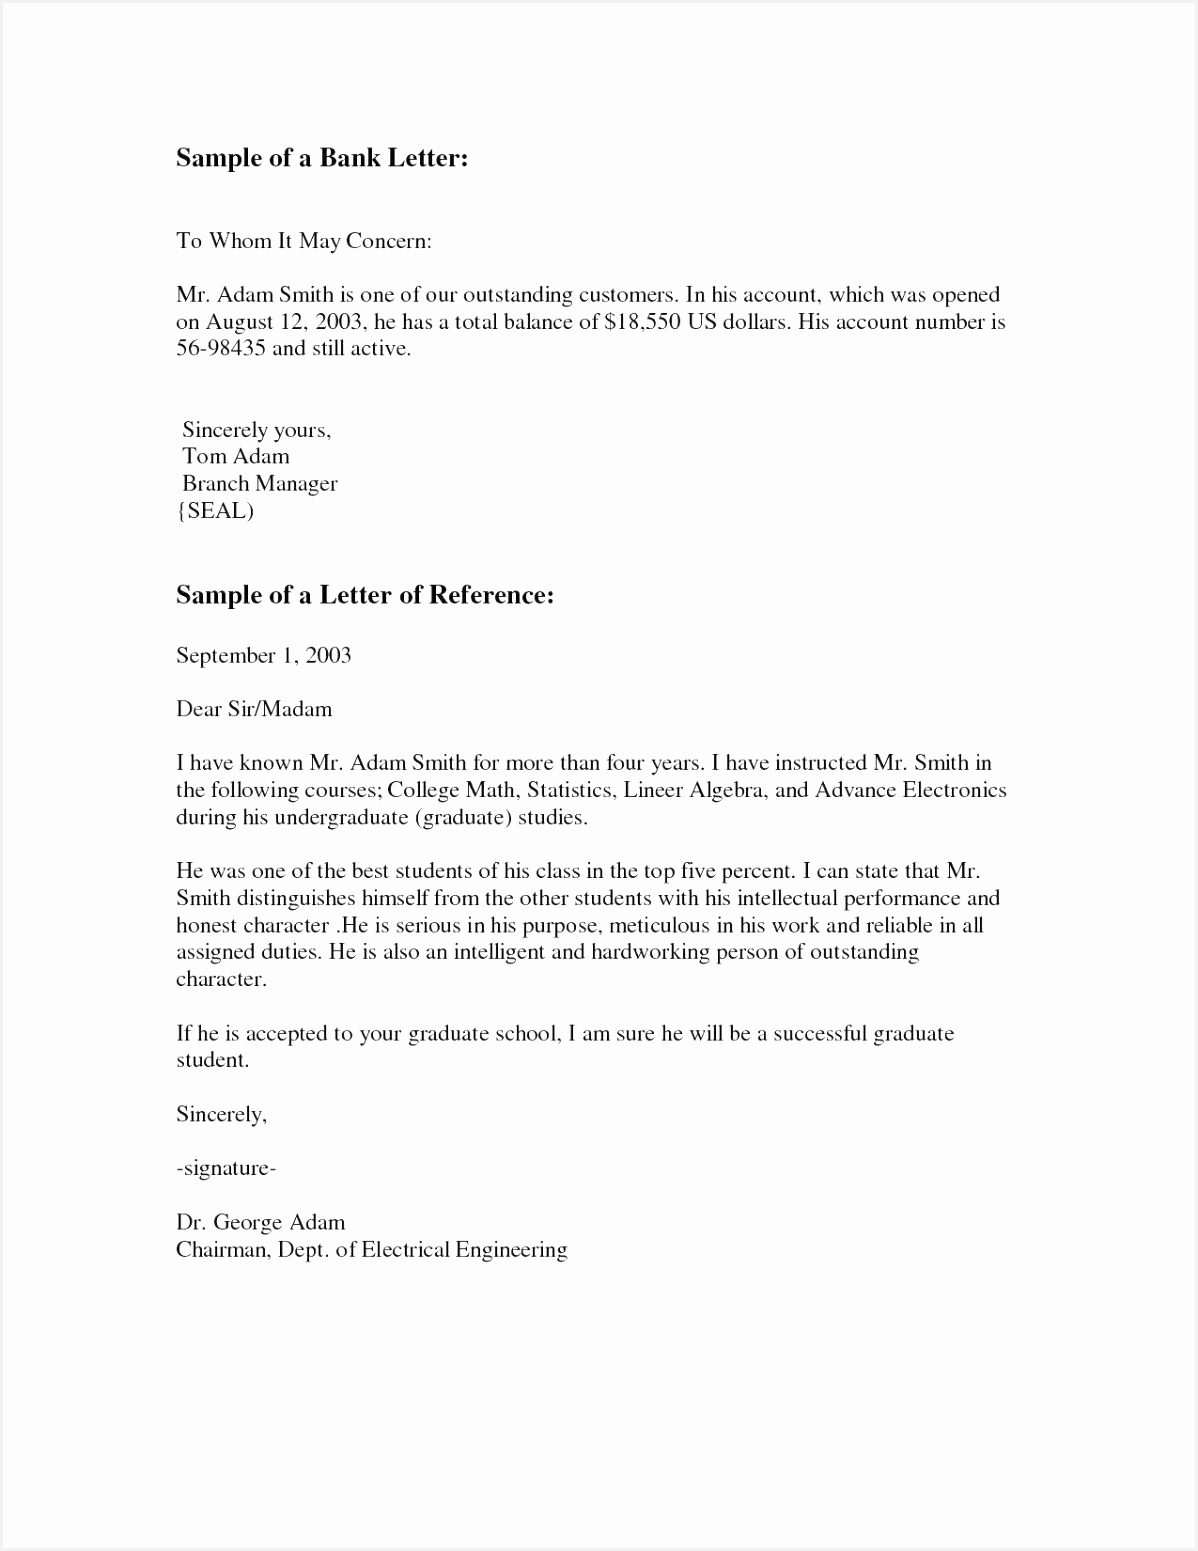 Us format Resume Vnhyw Unique Acceptance Letter for Job New Job Hiring Letter format New Resume Of 7 Us format Resume